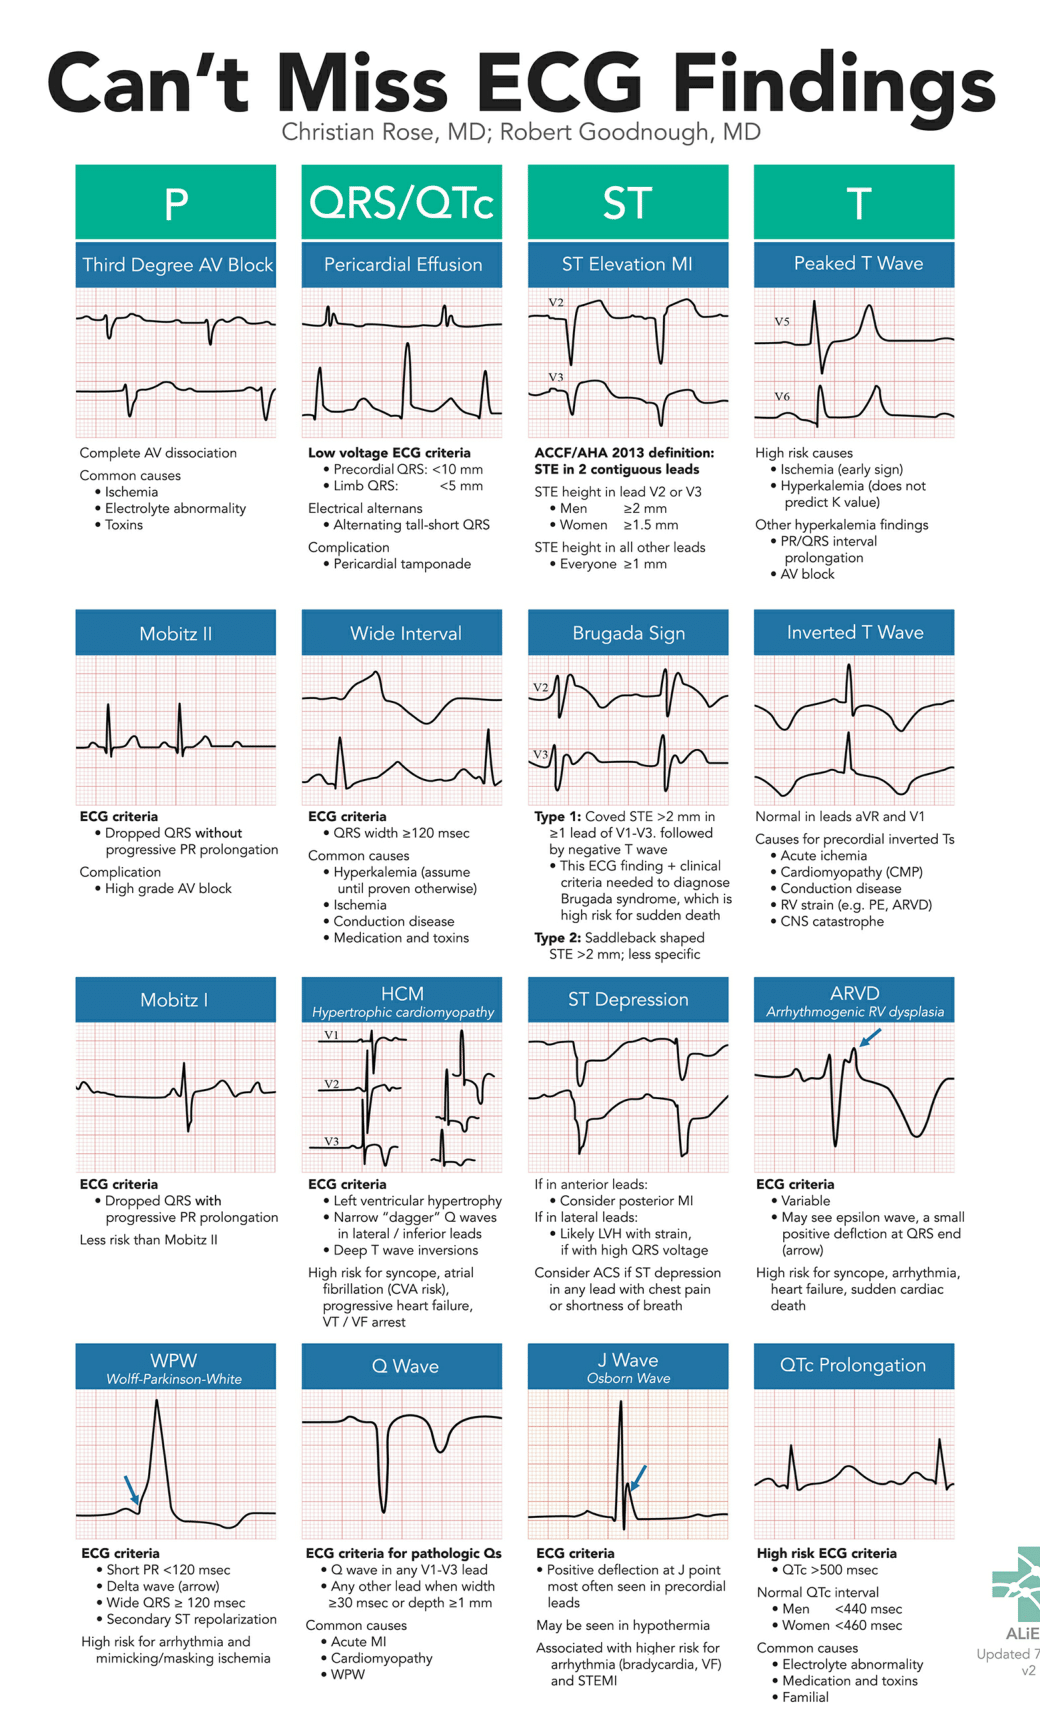 Can't Miss ECG Findings Cards for the Emergency Medicine Provider